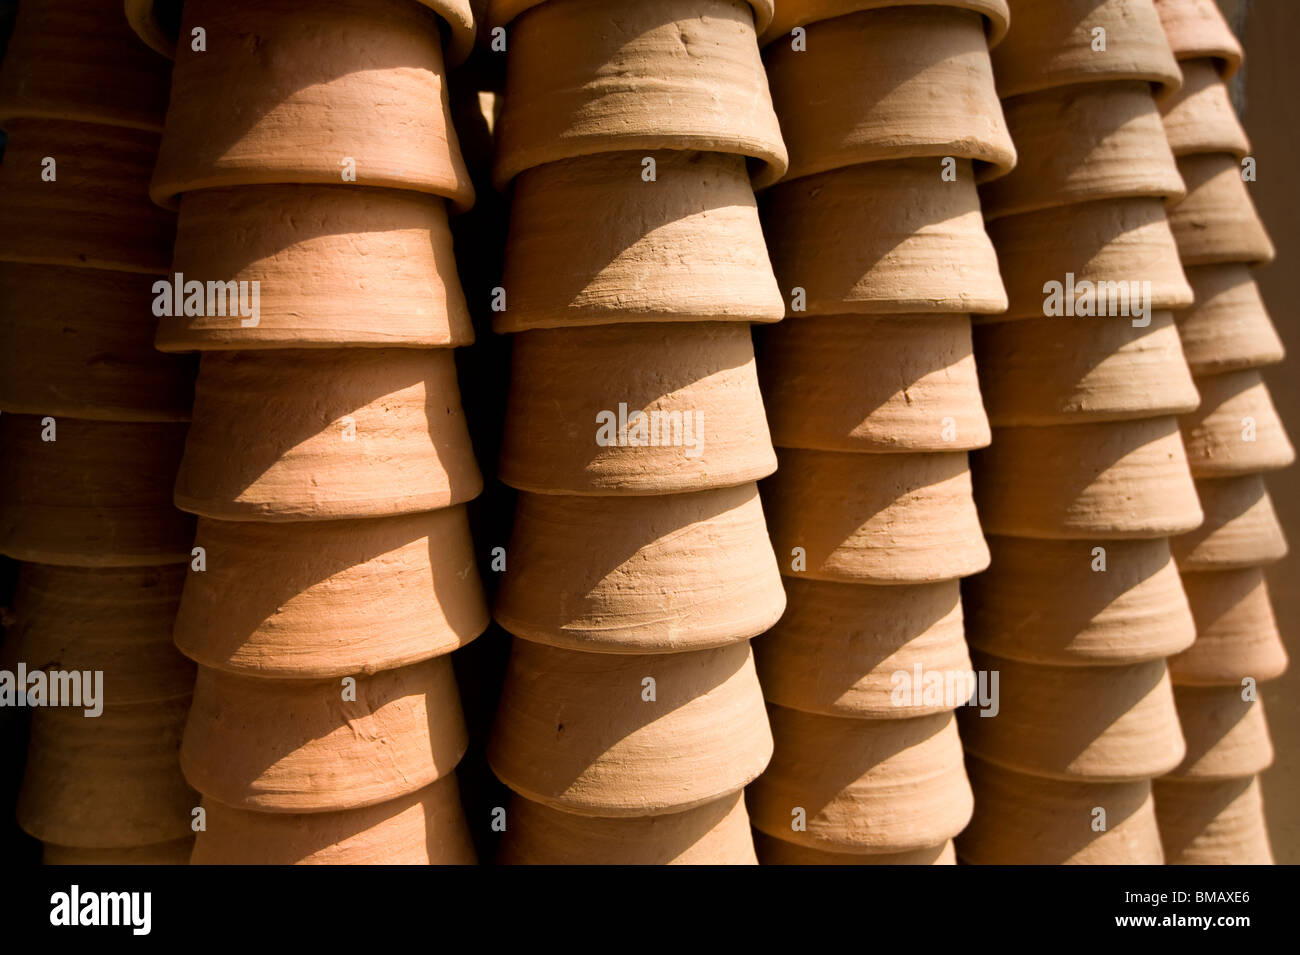 Disposable and recyclable terra cotta cups for lassi, an Indian yoghourt drink, Jaipur, Rajasthan - Stock Image